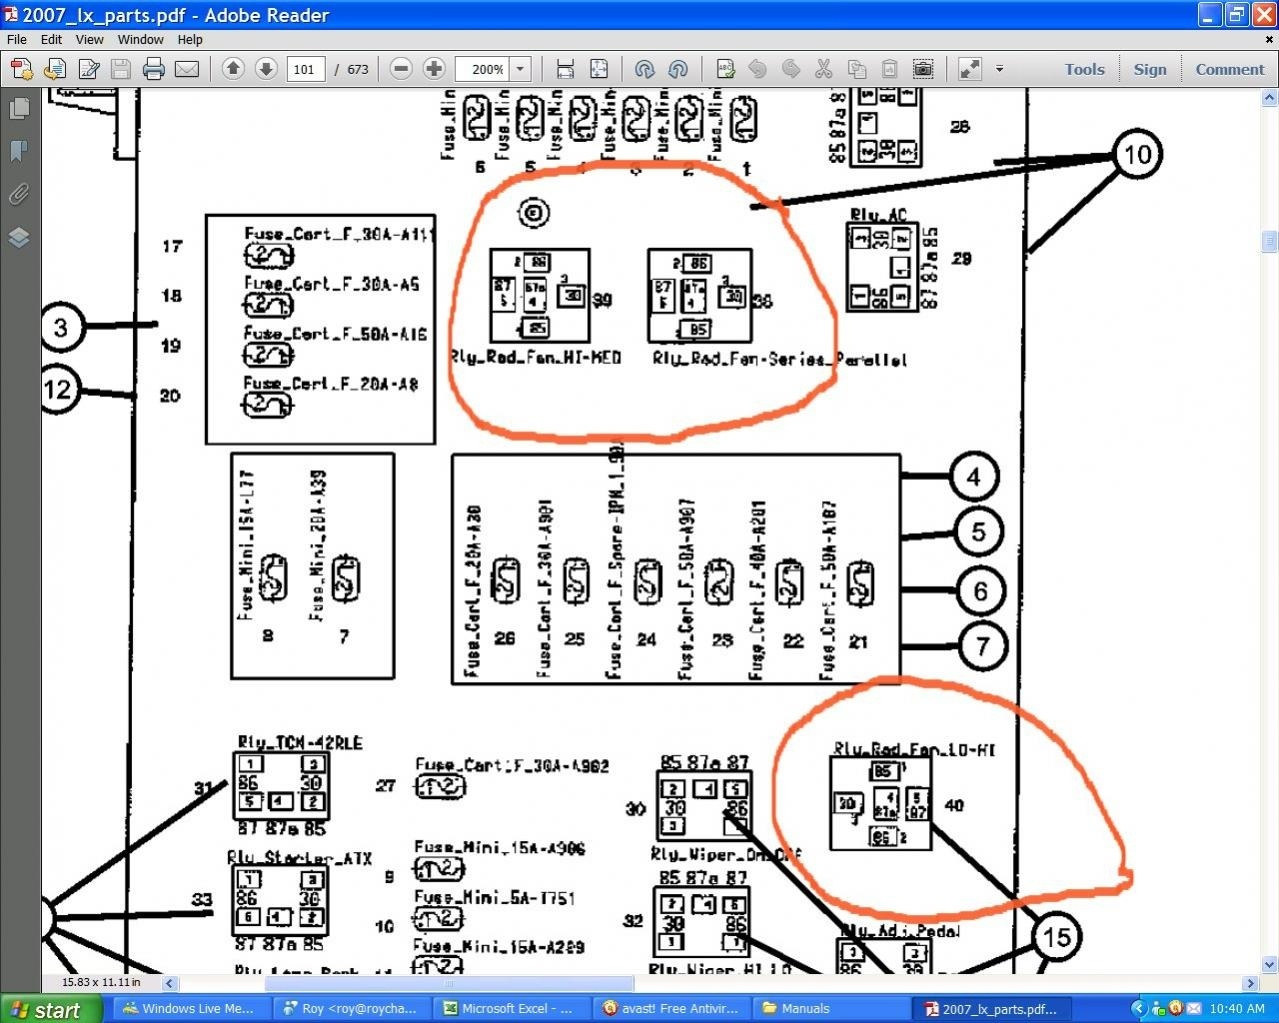 2005 300c Fuse Diagram 2006 Chrysler 300 Box And Relay Manual Guide Wiring Questions I Have A 1280x853 Location 19 Rh Cargurus Com 2 7